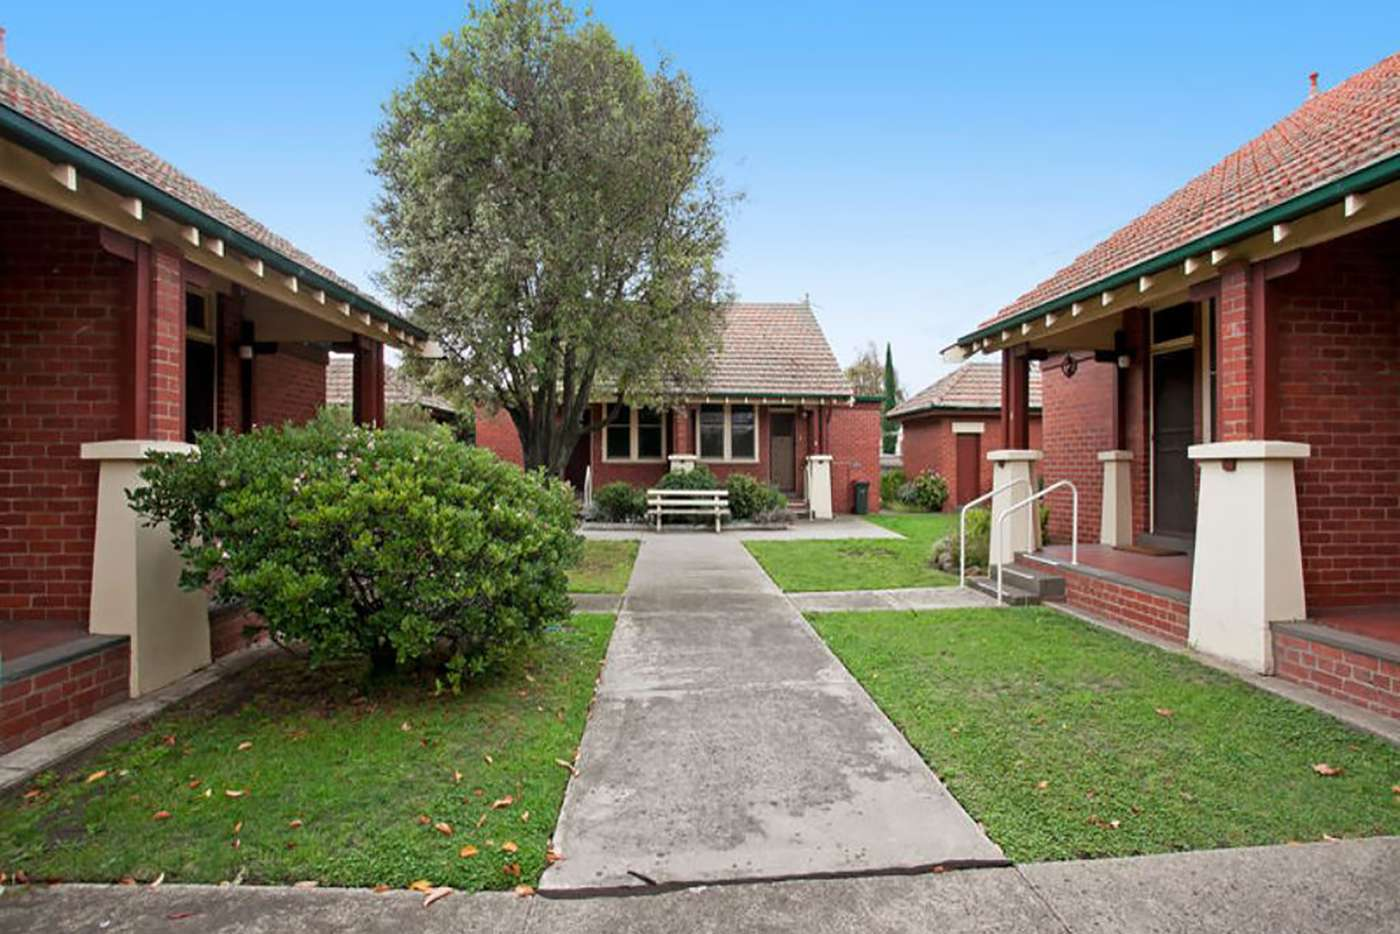 Main view of Homely house listing, 2/73 McKillop Street, Geelong VIC 3220